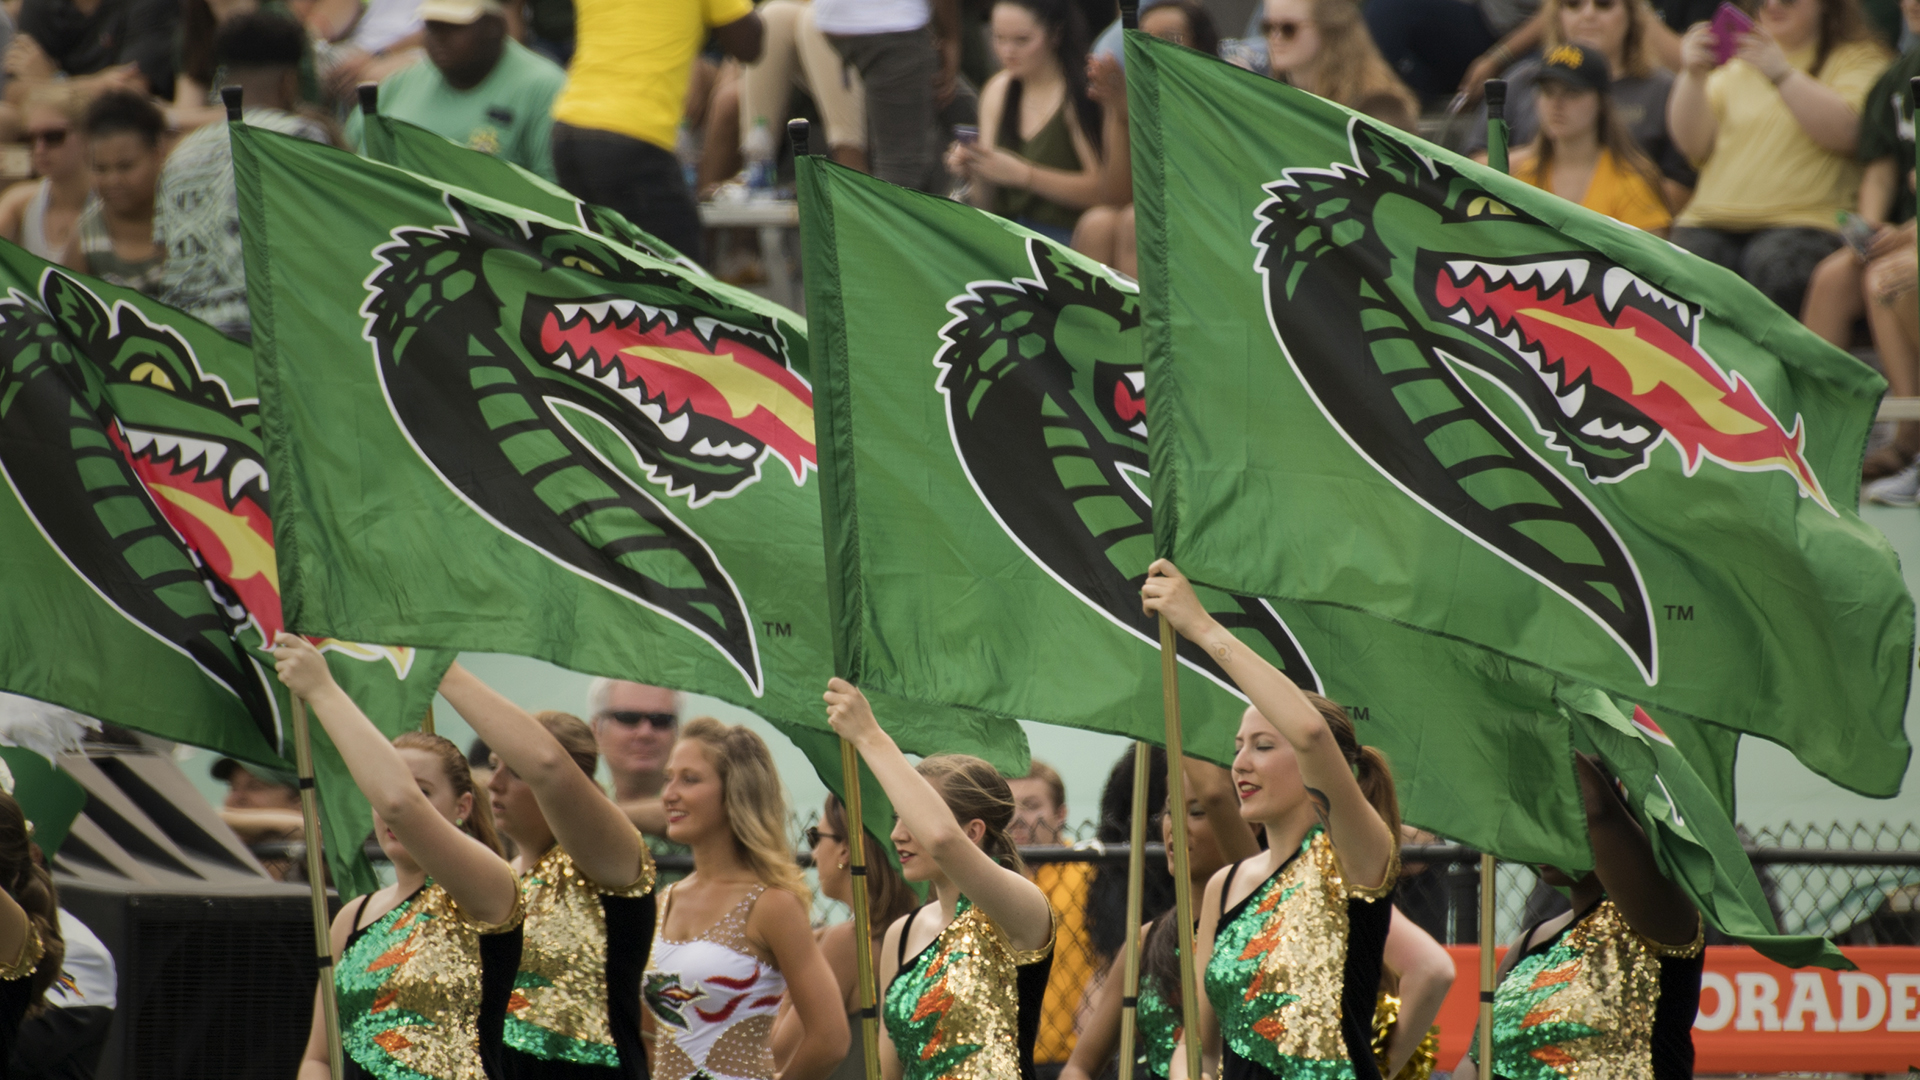 Colorguard holding UAB flags at football game with crowd in the background.